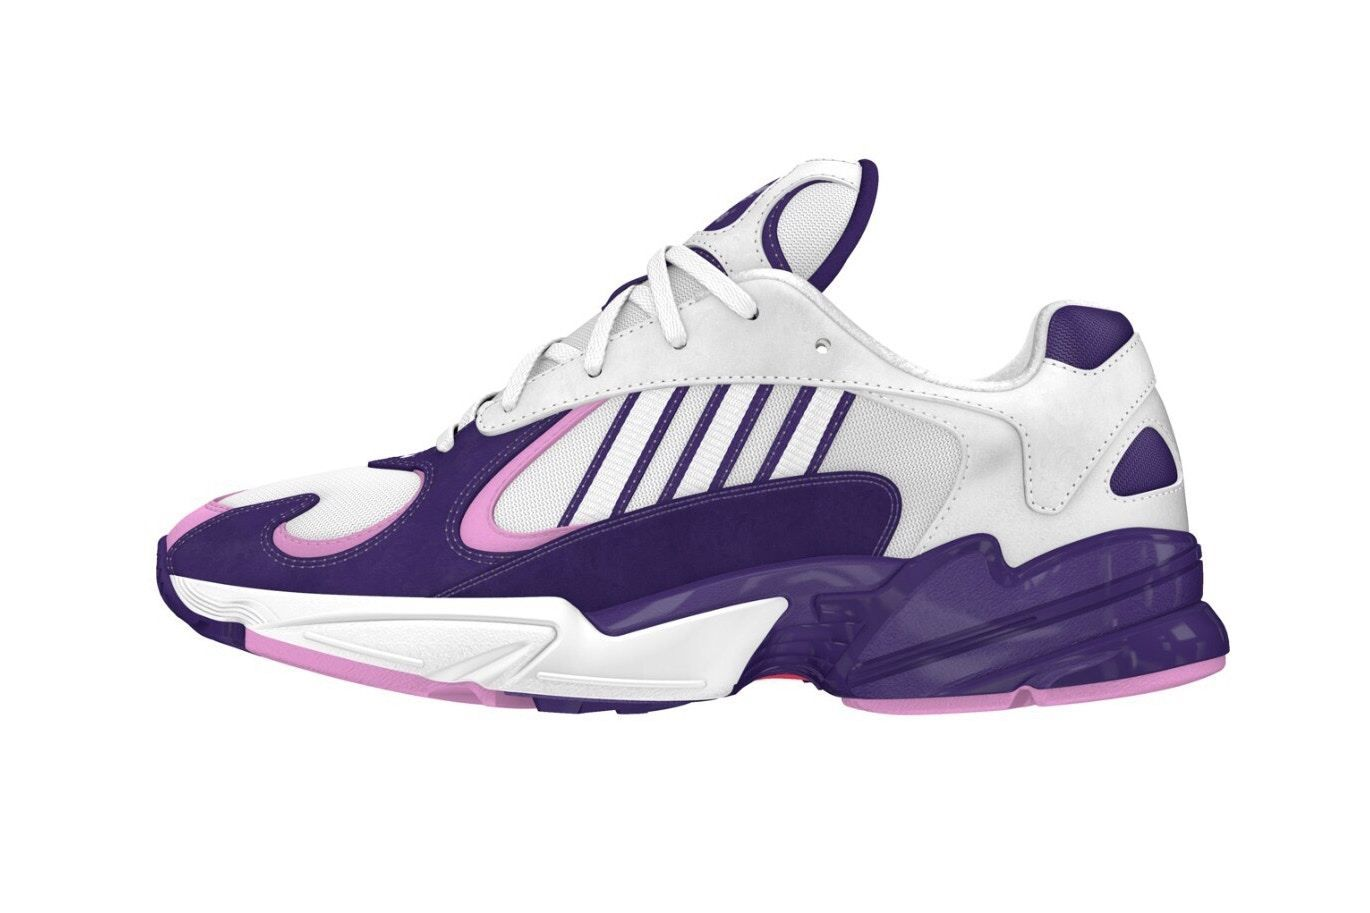 "6a1f06b12094 FYI  Dragonball Z x adidas – New Yung 1 im ""Frieza"" Colorway!  hypesrus   hypesrus"